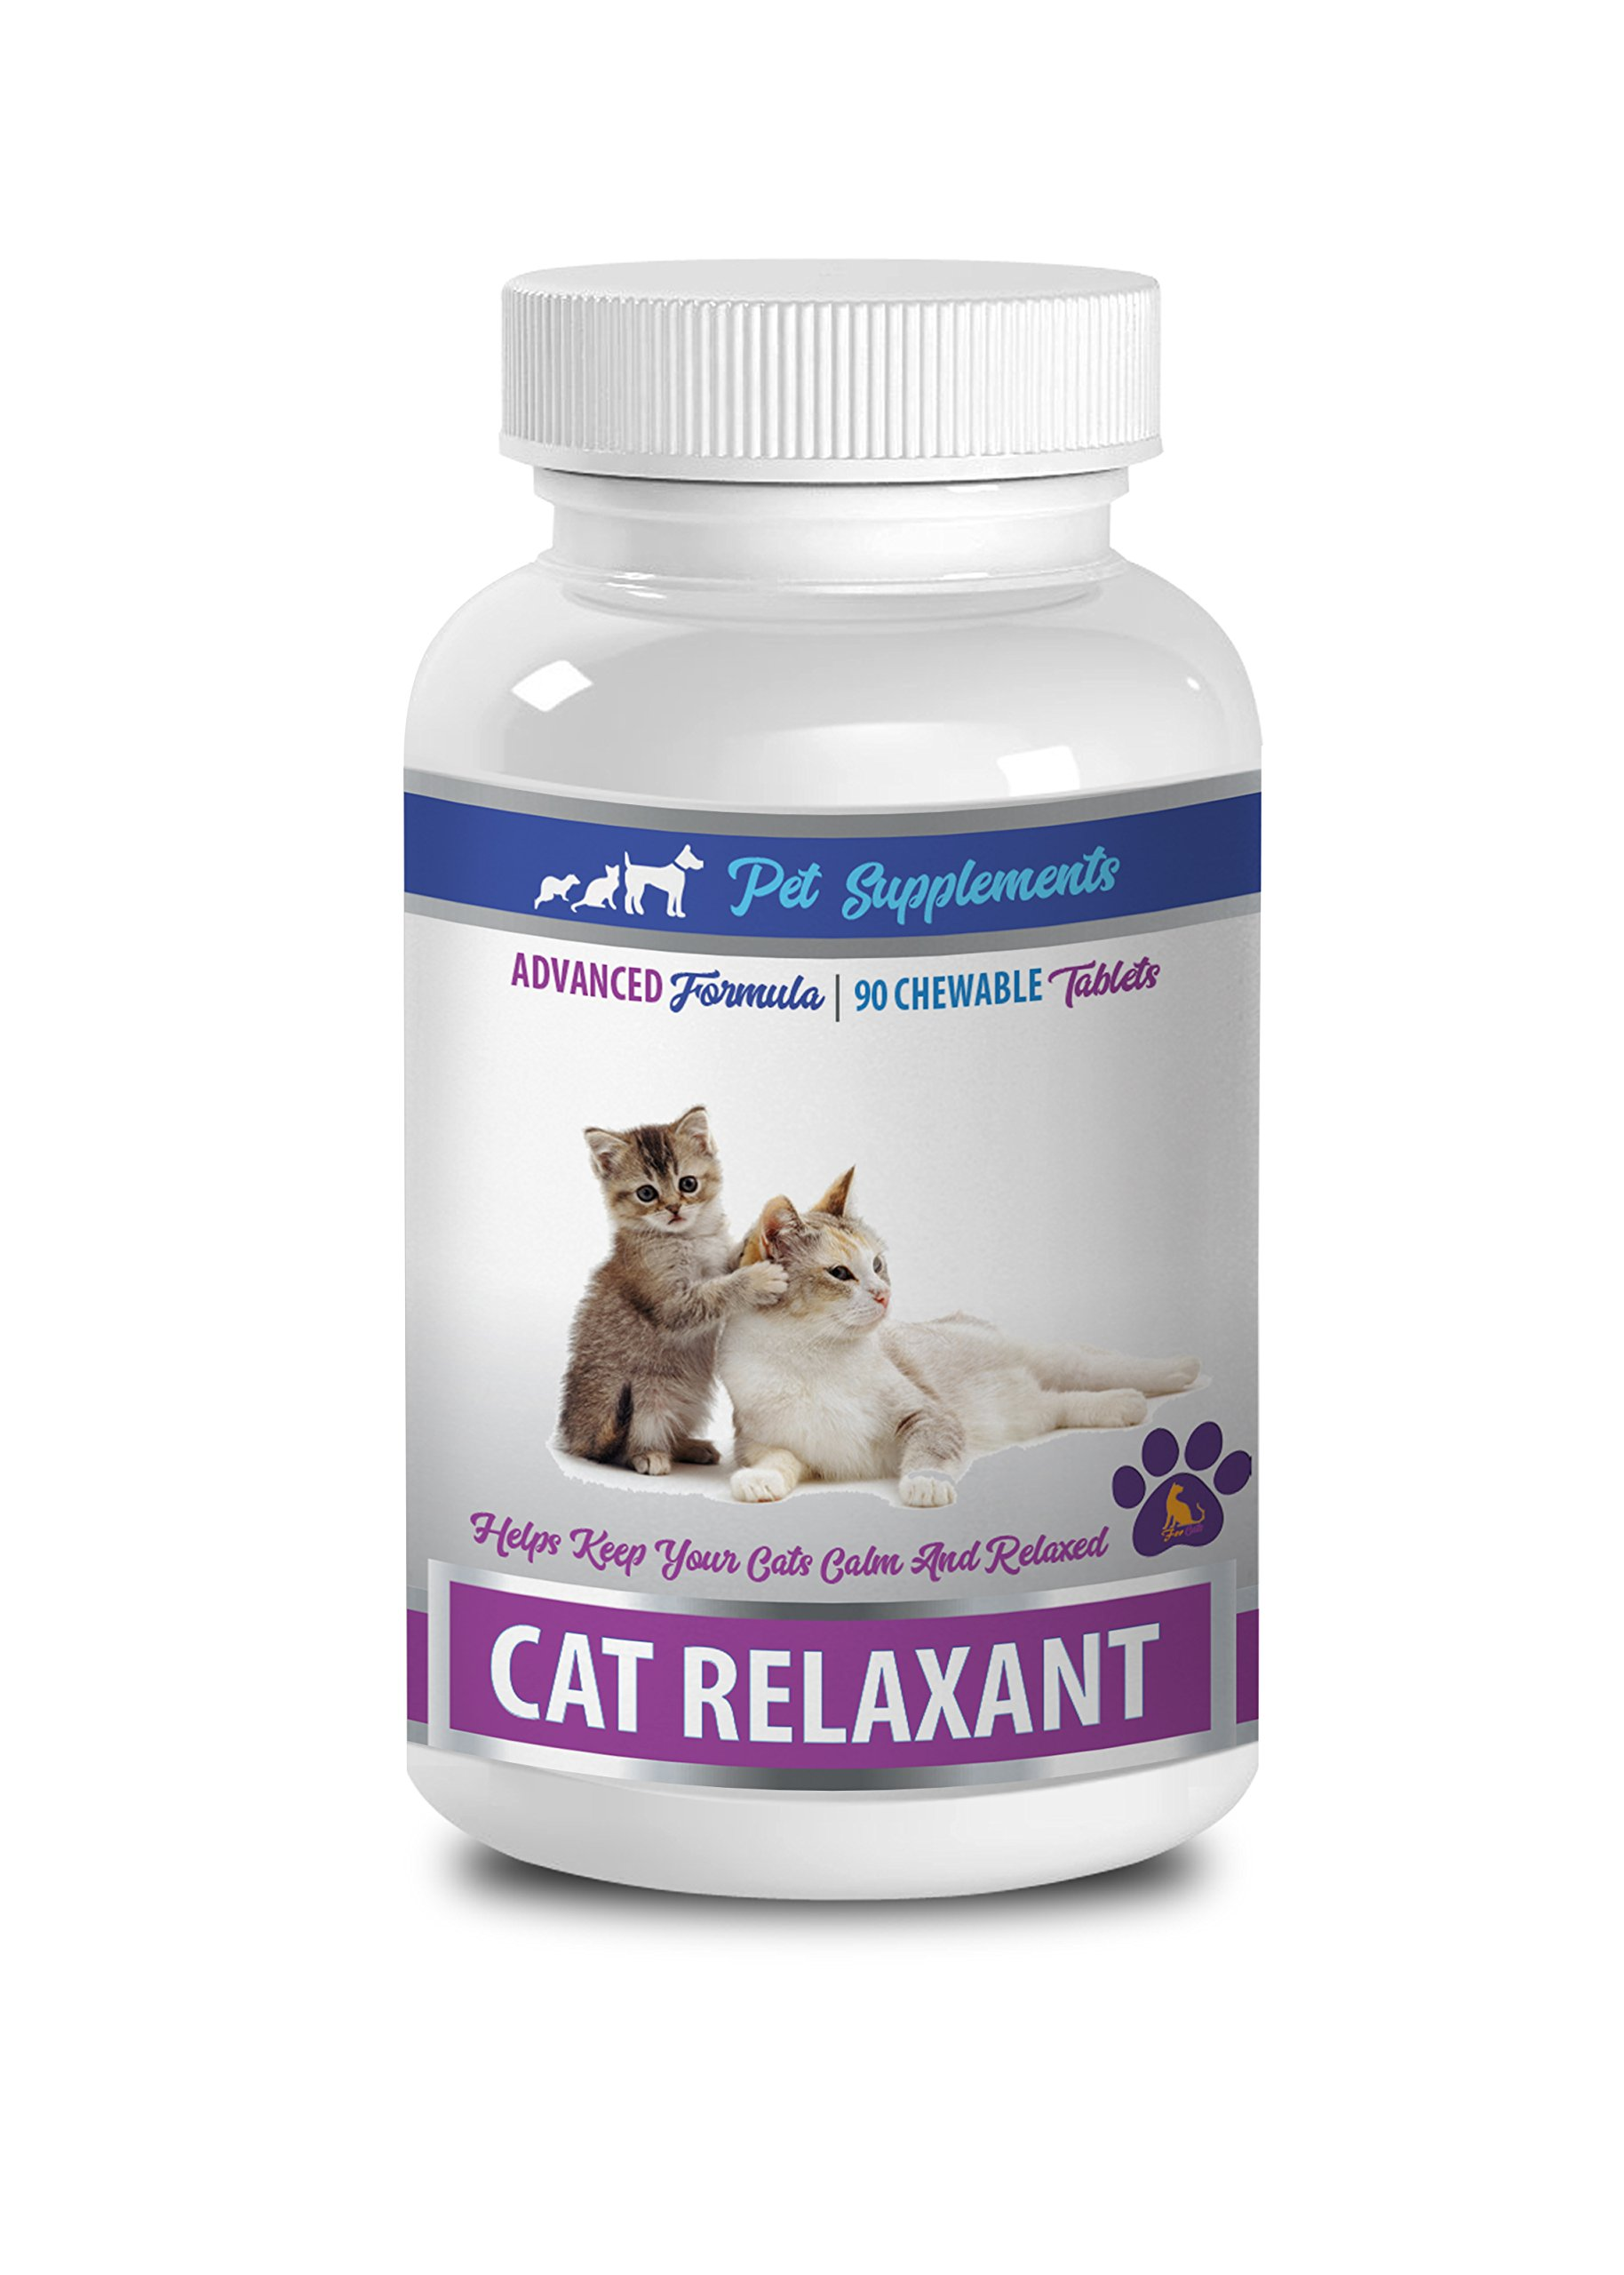 PET SUPPLEMENTS cat calming travel - CAT RELAXANT - KEEPS CATS CALM AND RELAXED - CHEWABLE TREATS - tryptophan cat - 1 Bottle (90 Chews)